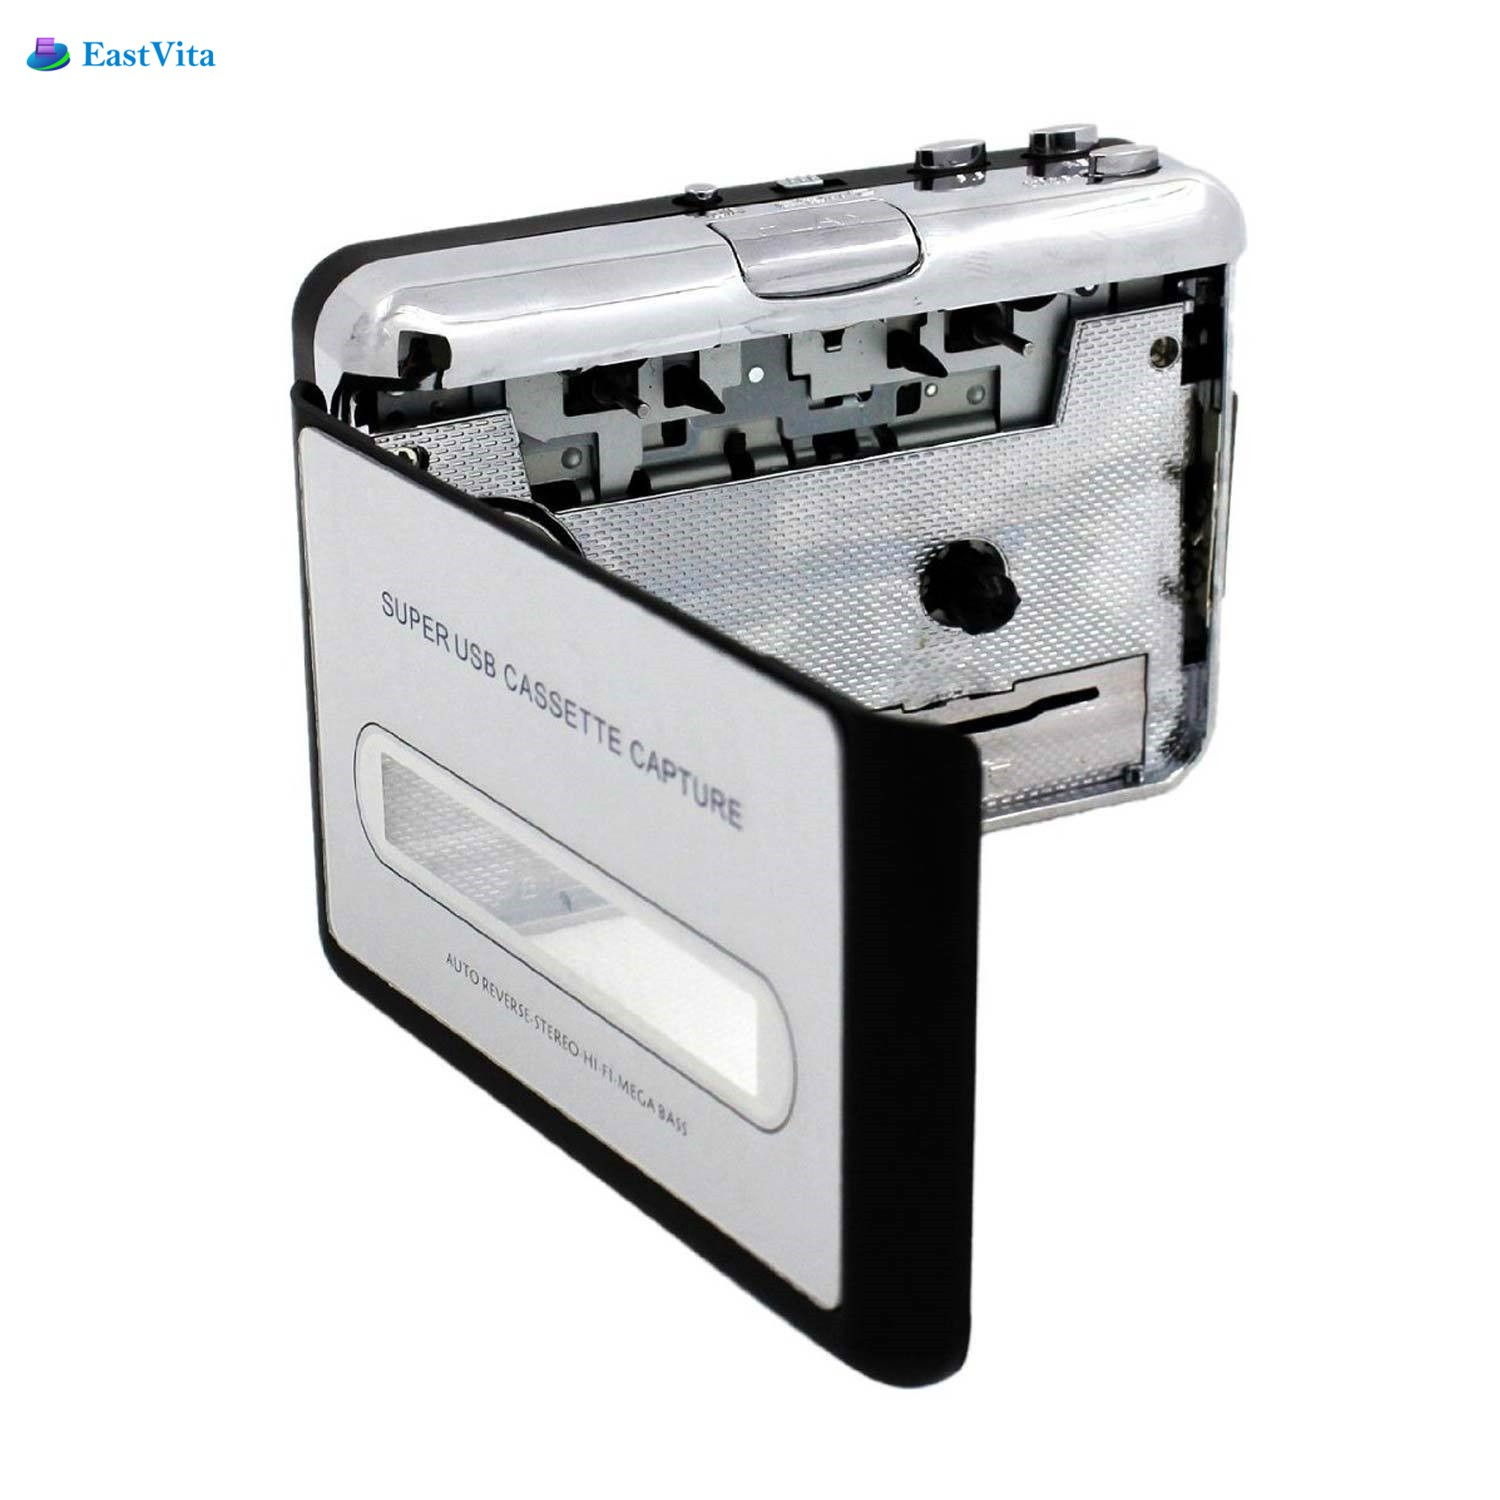 Konstruktiv Eastvita Klassische Tragbare Usb Cassette-to-mp3 Converter Capture Stereo Audio Musik Player R30 Unterhaltungselektronik